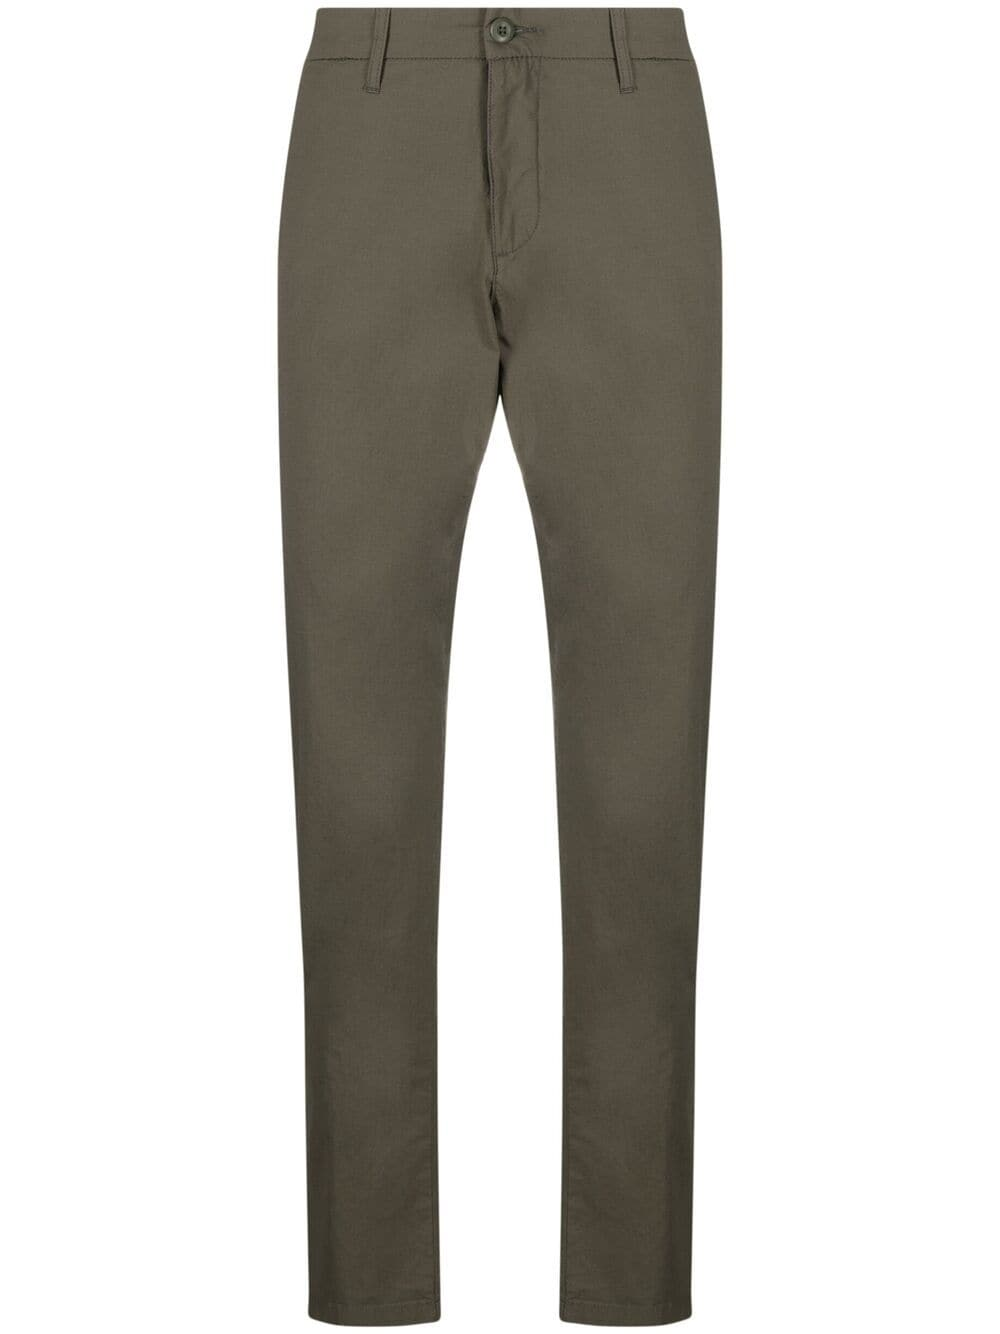 sid pants man olive green in cotton CARHARTT WIP   Trousers   I027955.32966.02